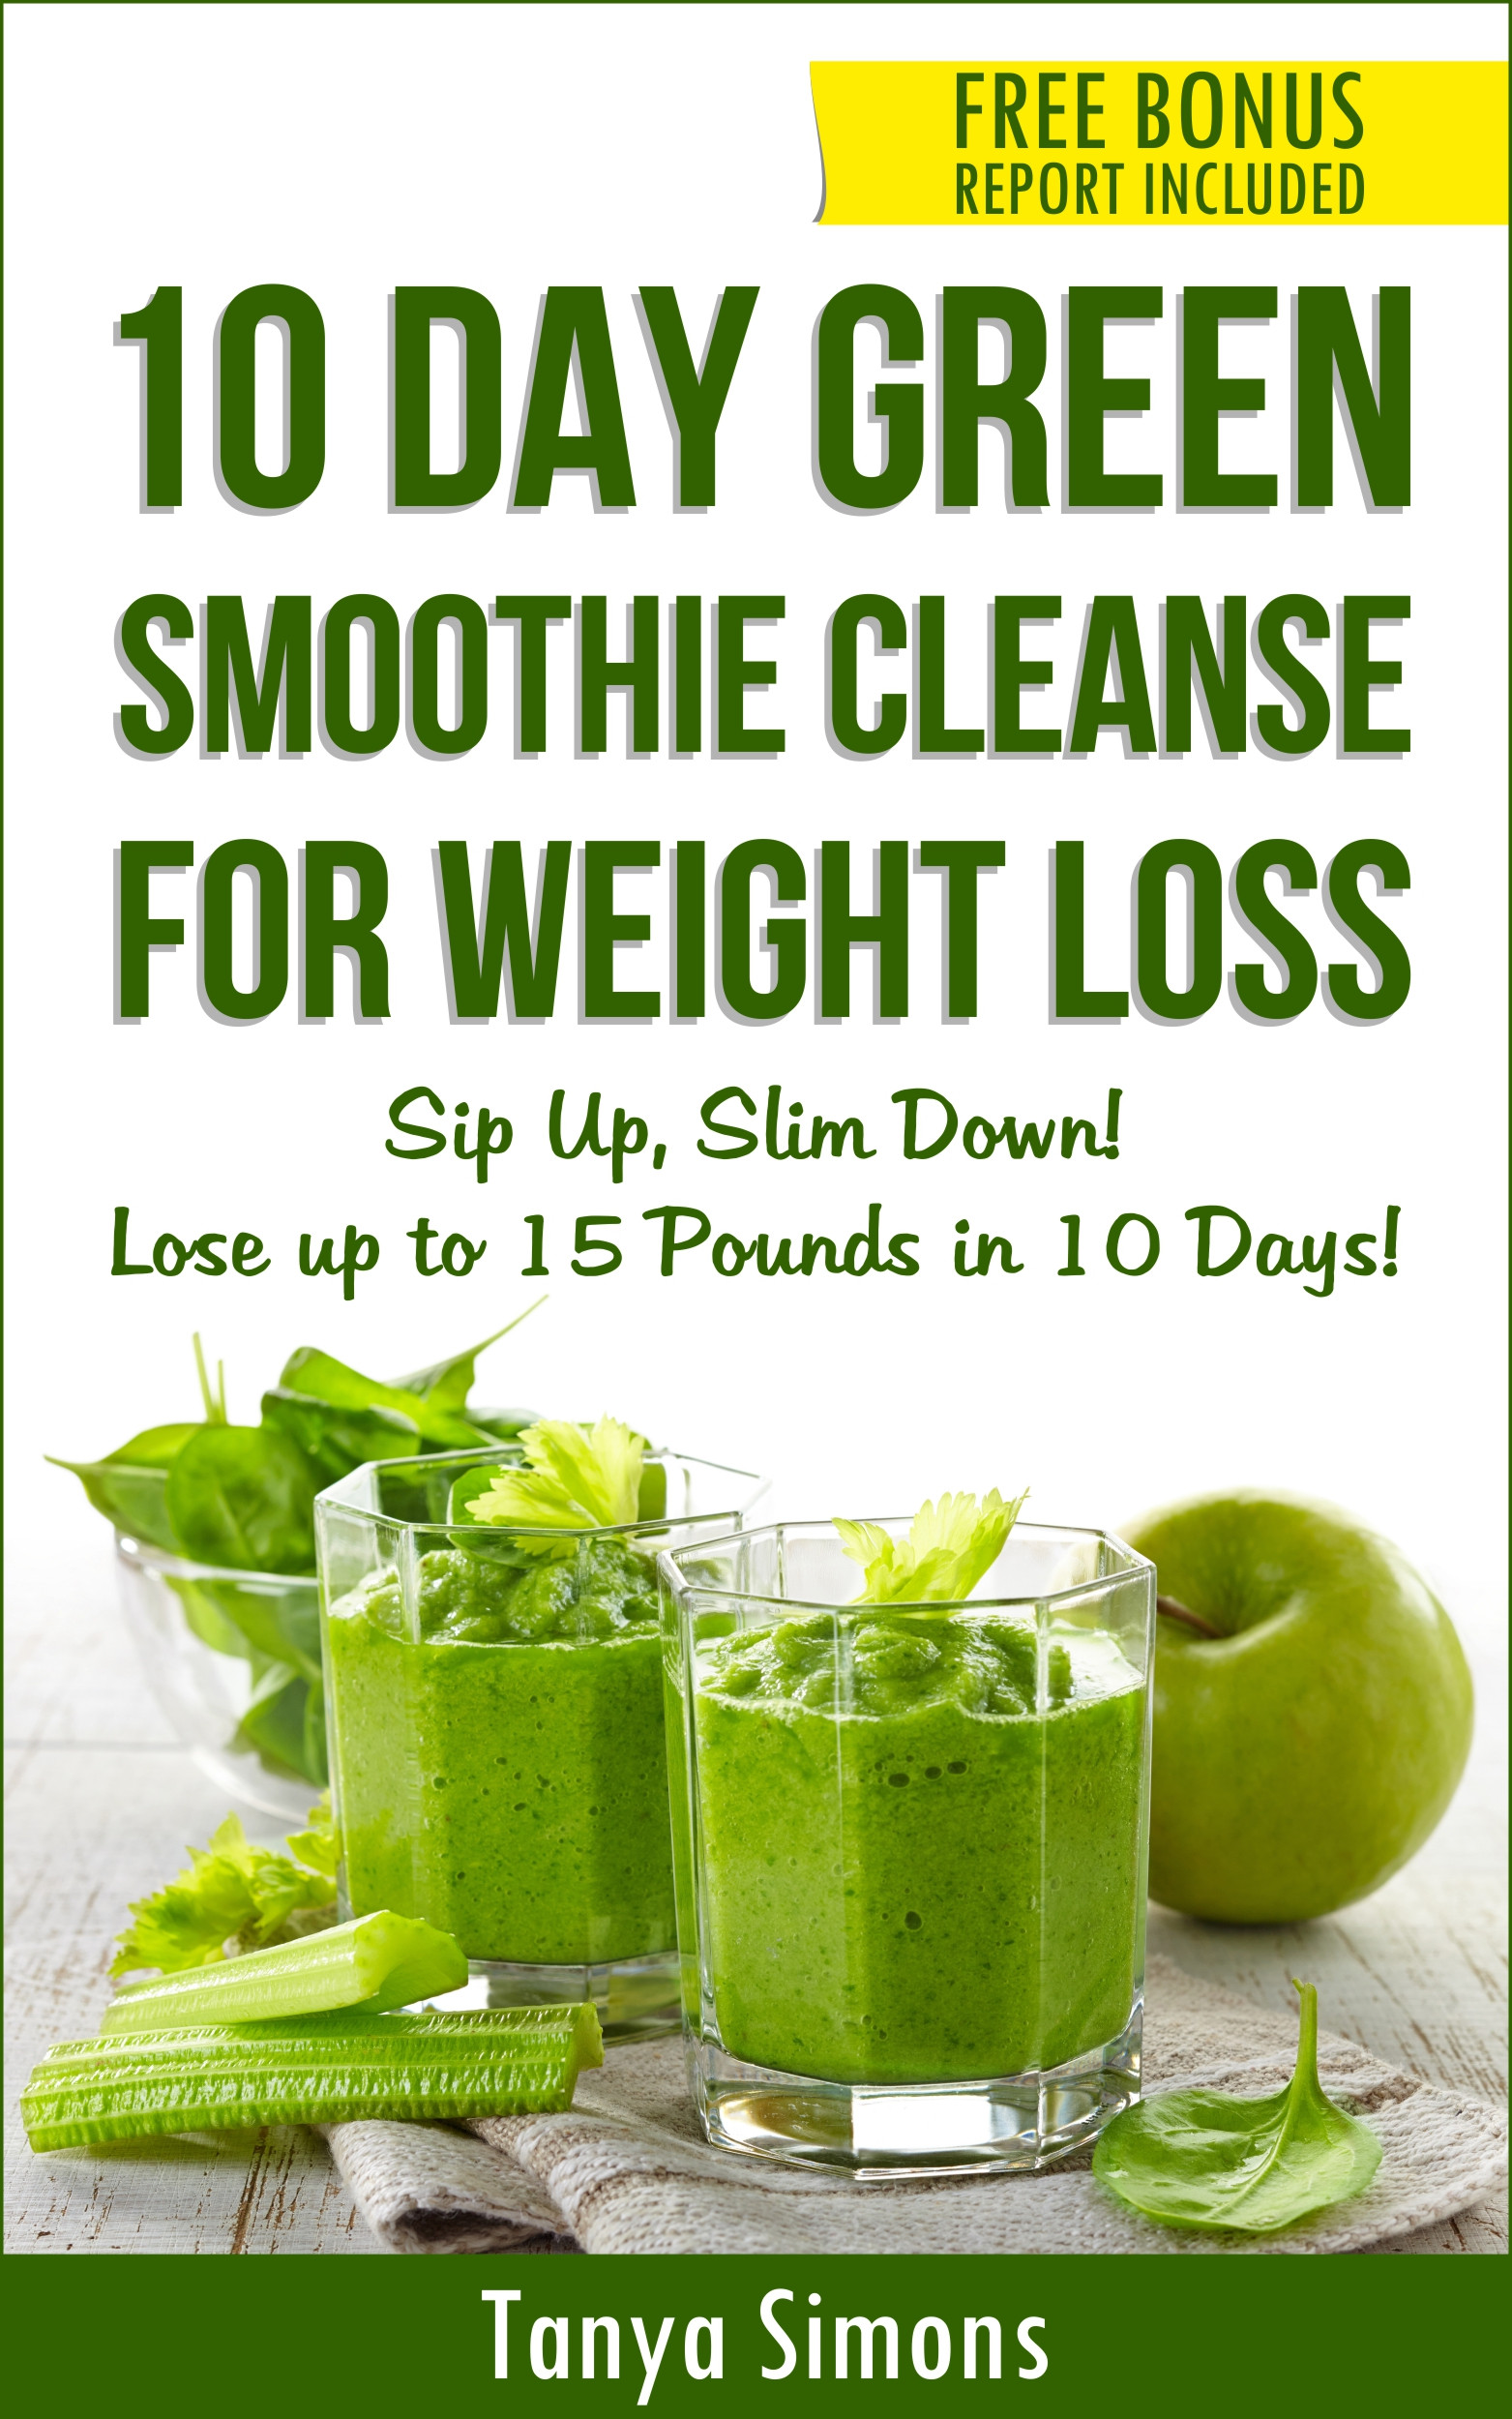 Diet Smoothie Recipes  10 Day Green Smoothie Cleanse Lose 15lbs with 10 Day